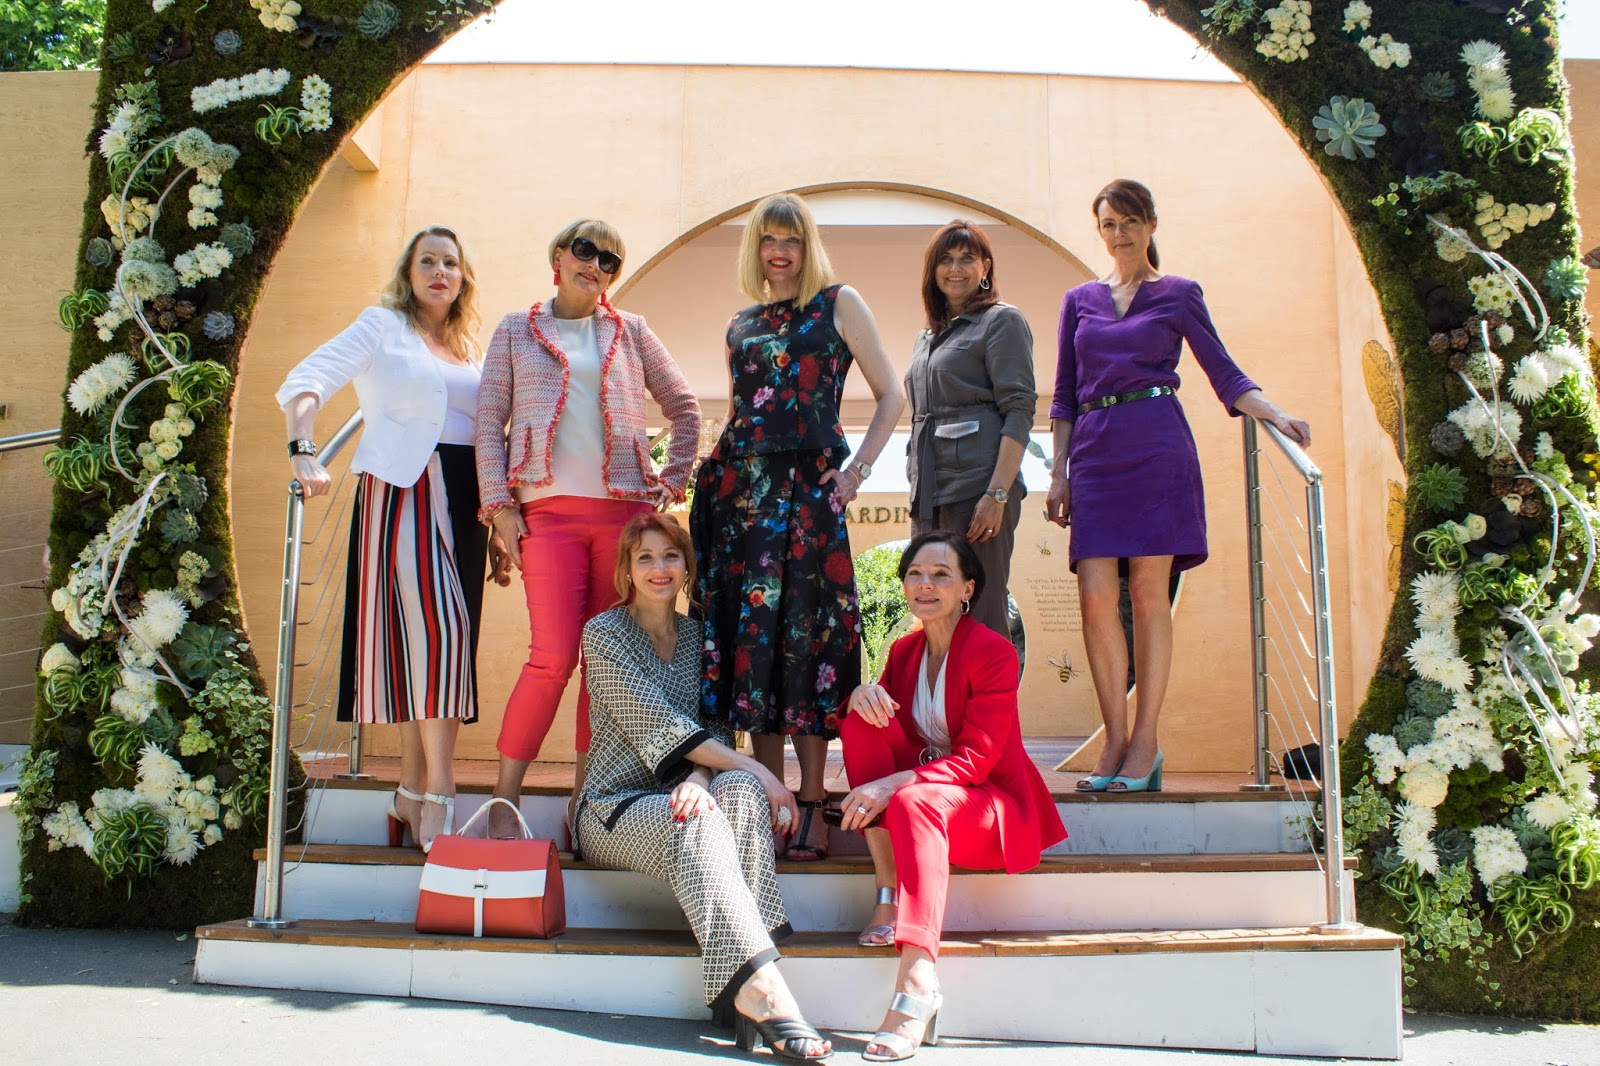 over-40-women-outfits-Chelsea-Flower-Show